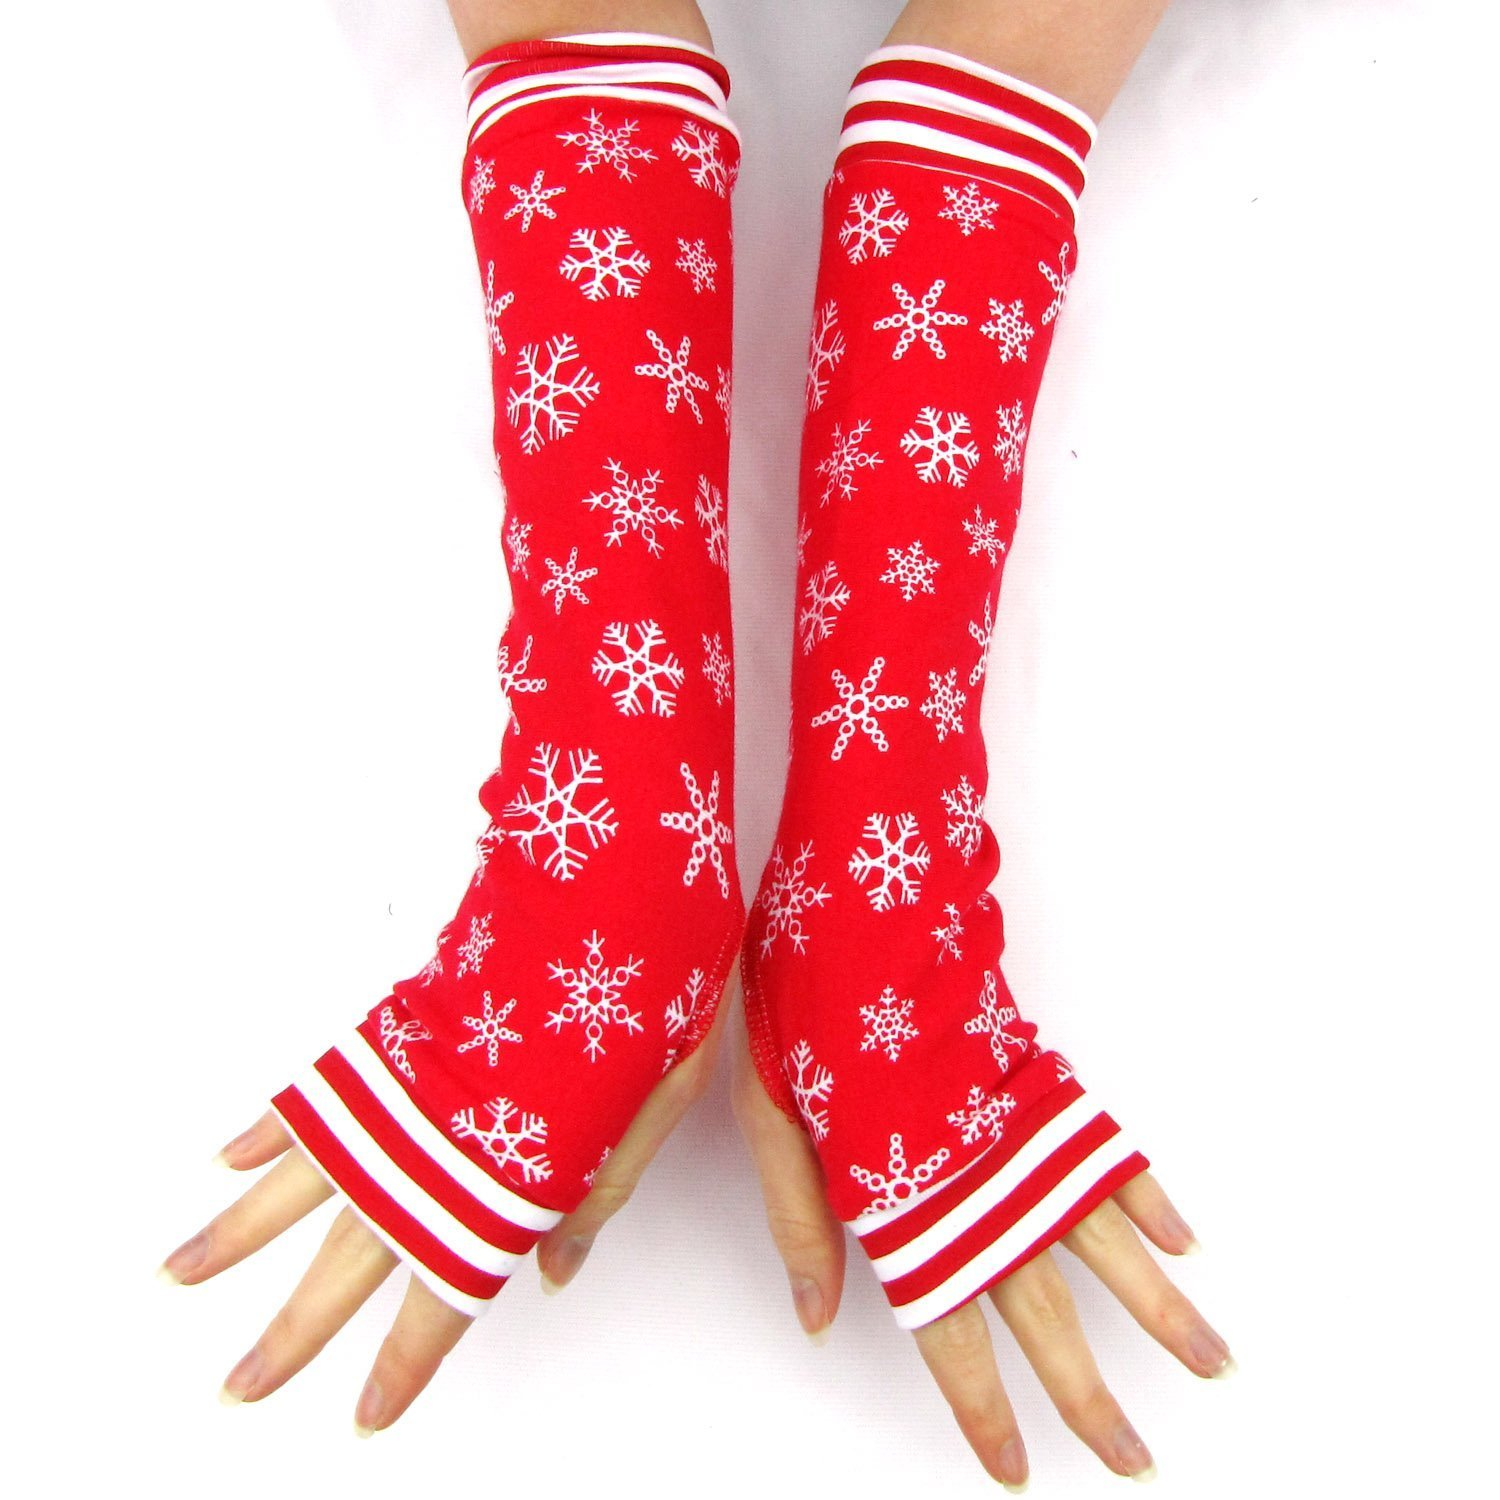 Winter Dreams arm warmers gloves Red Christmas Snowflakes